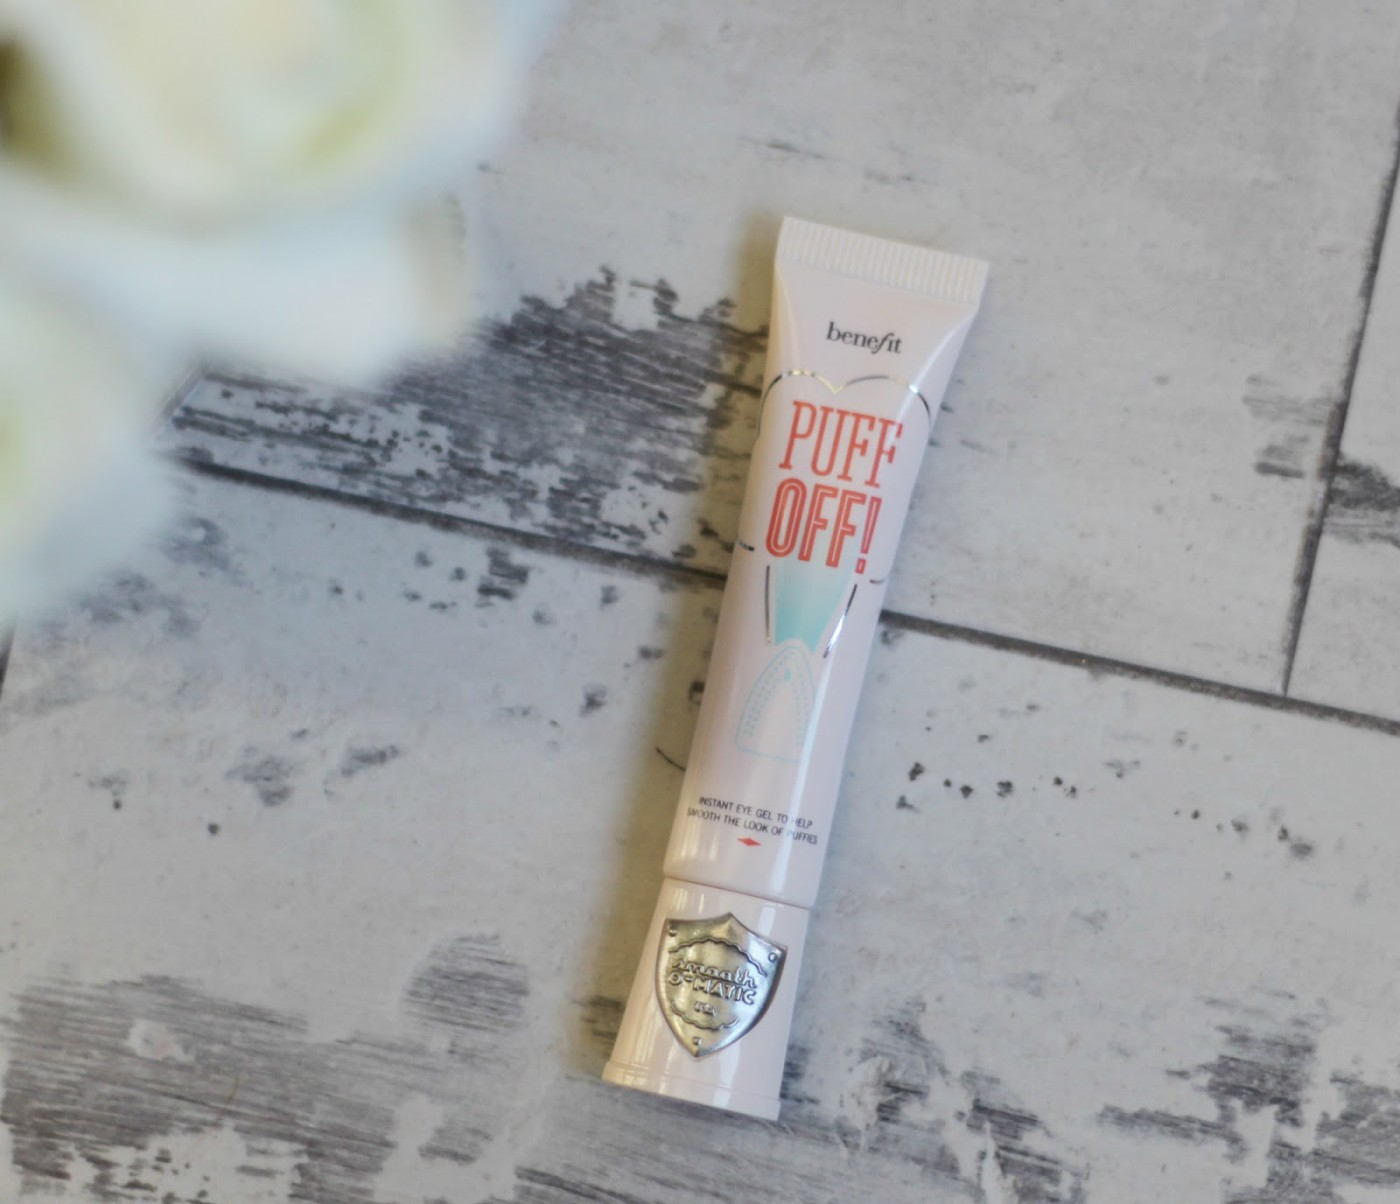 benefit, benefit puff off, benefit puff off eye gel, through chelsea's eyes, benefit skincare